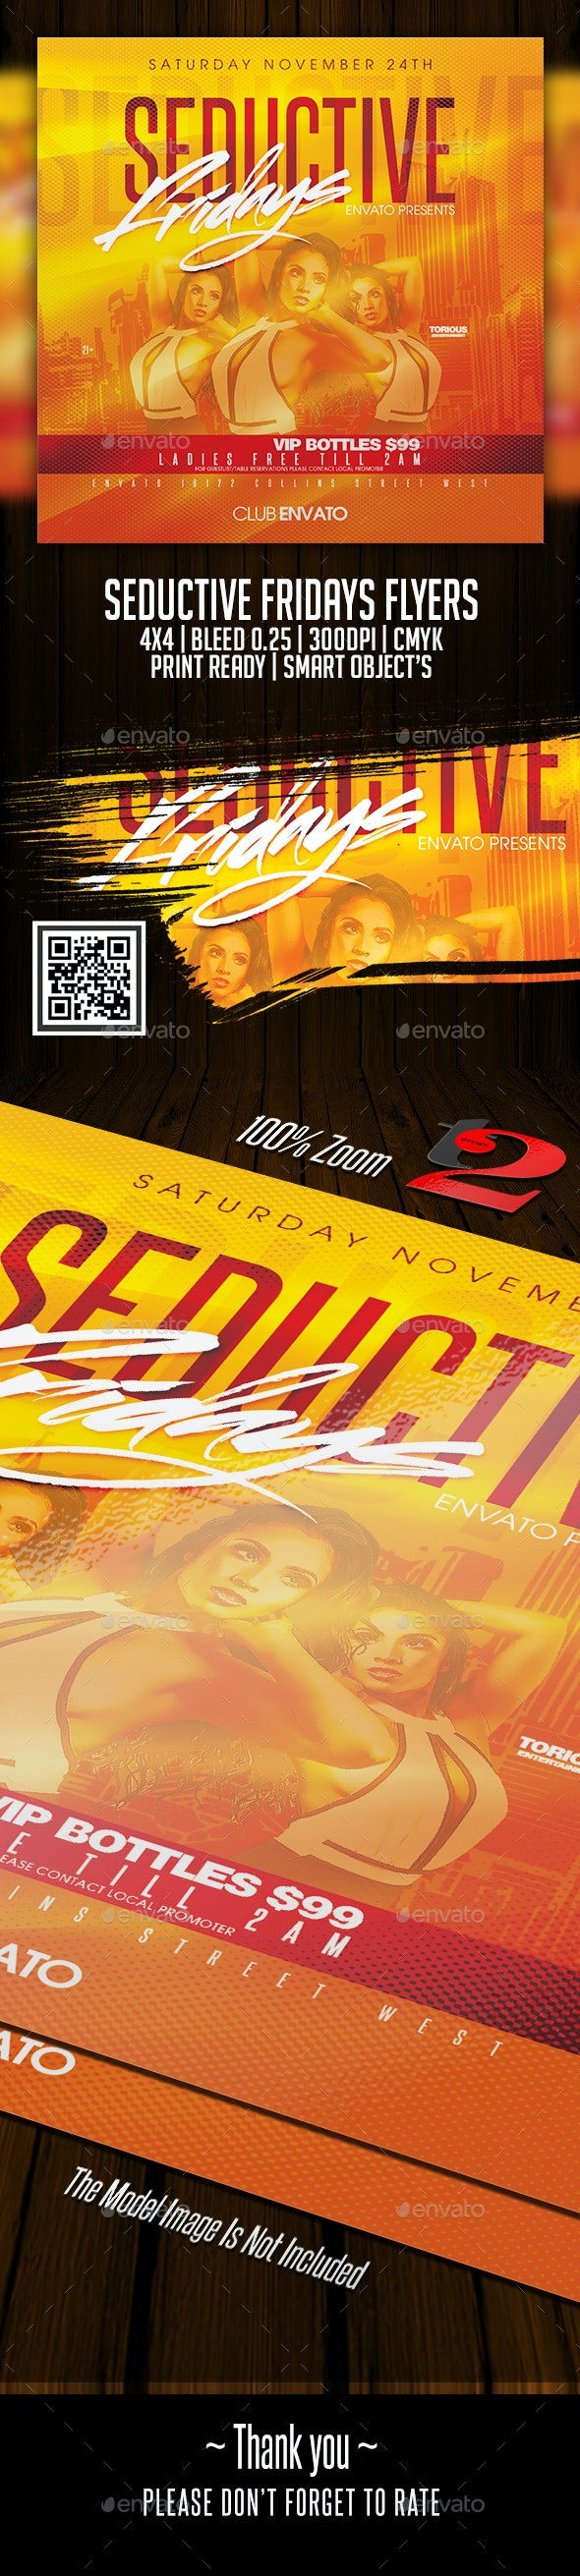 Seductive Fridays Flyers Template - Clubs & Parties Events